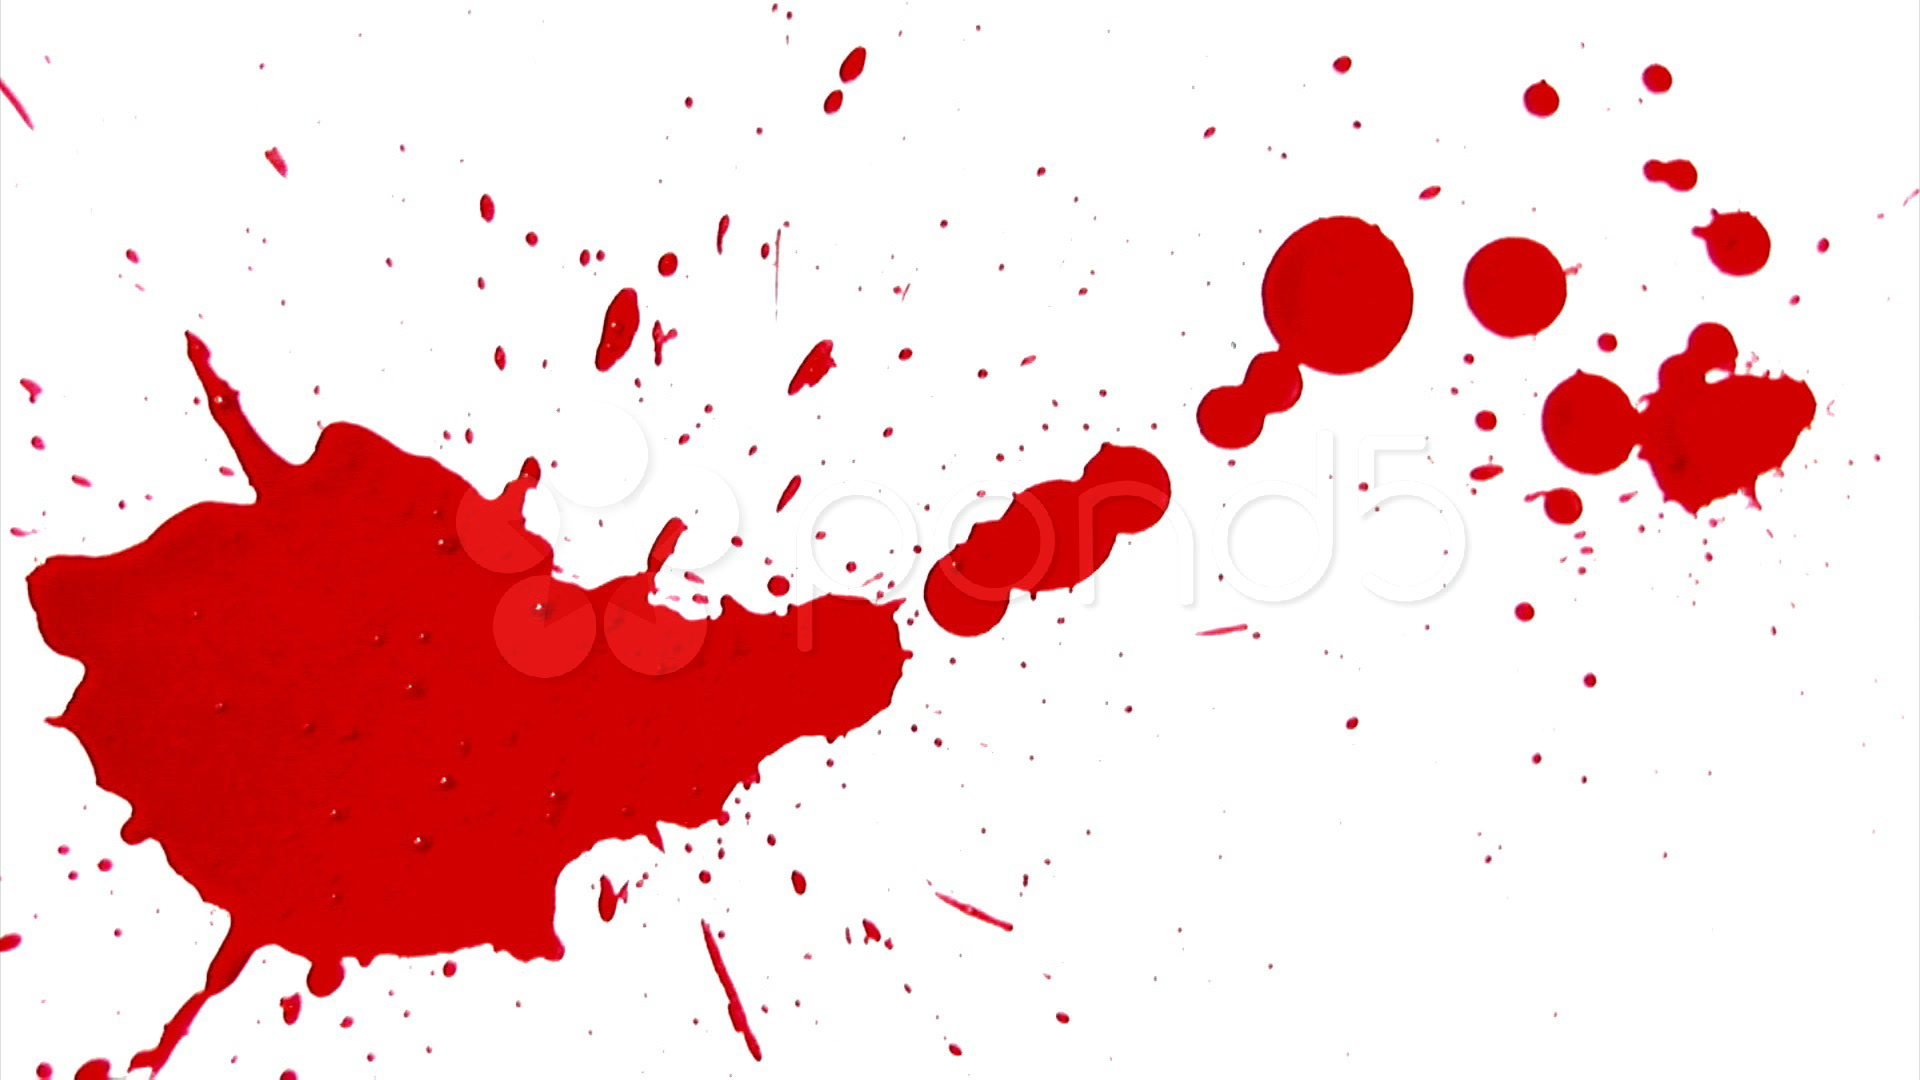 Free blood stain clipart free stock Blood splatter clipart - ClipartFest free stock